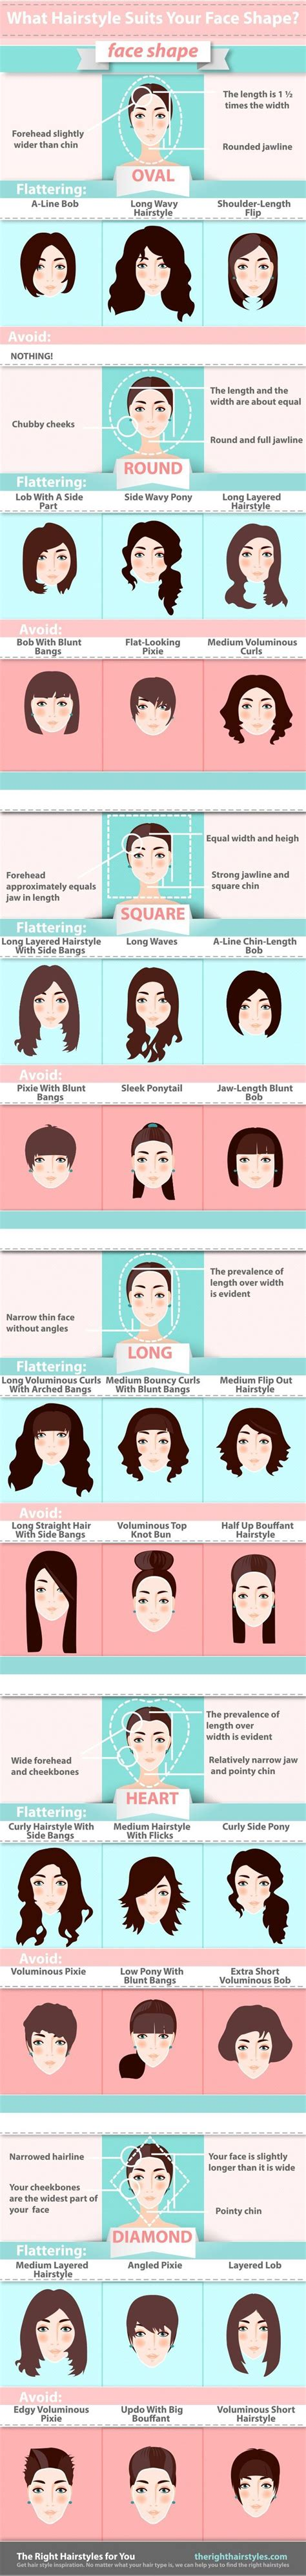 hairstyle tips best haircut for your face shape vogue india best ideas for makeup tutorials infographic the